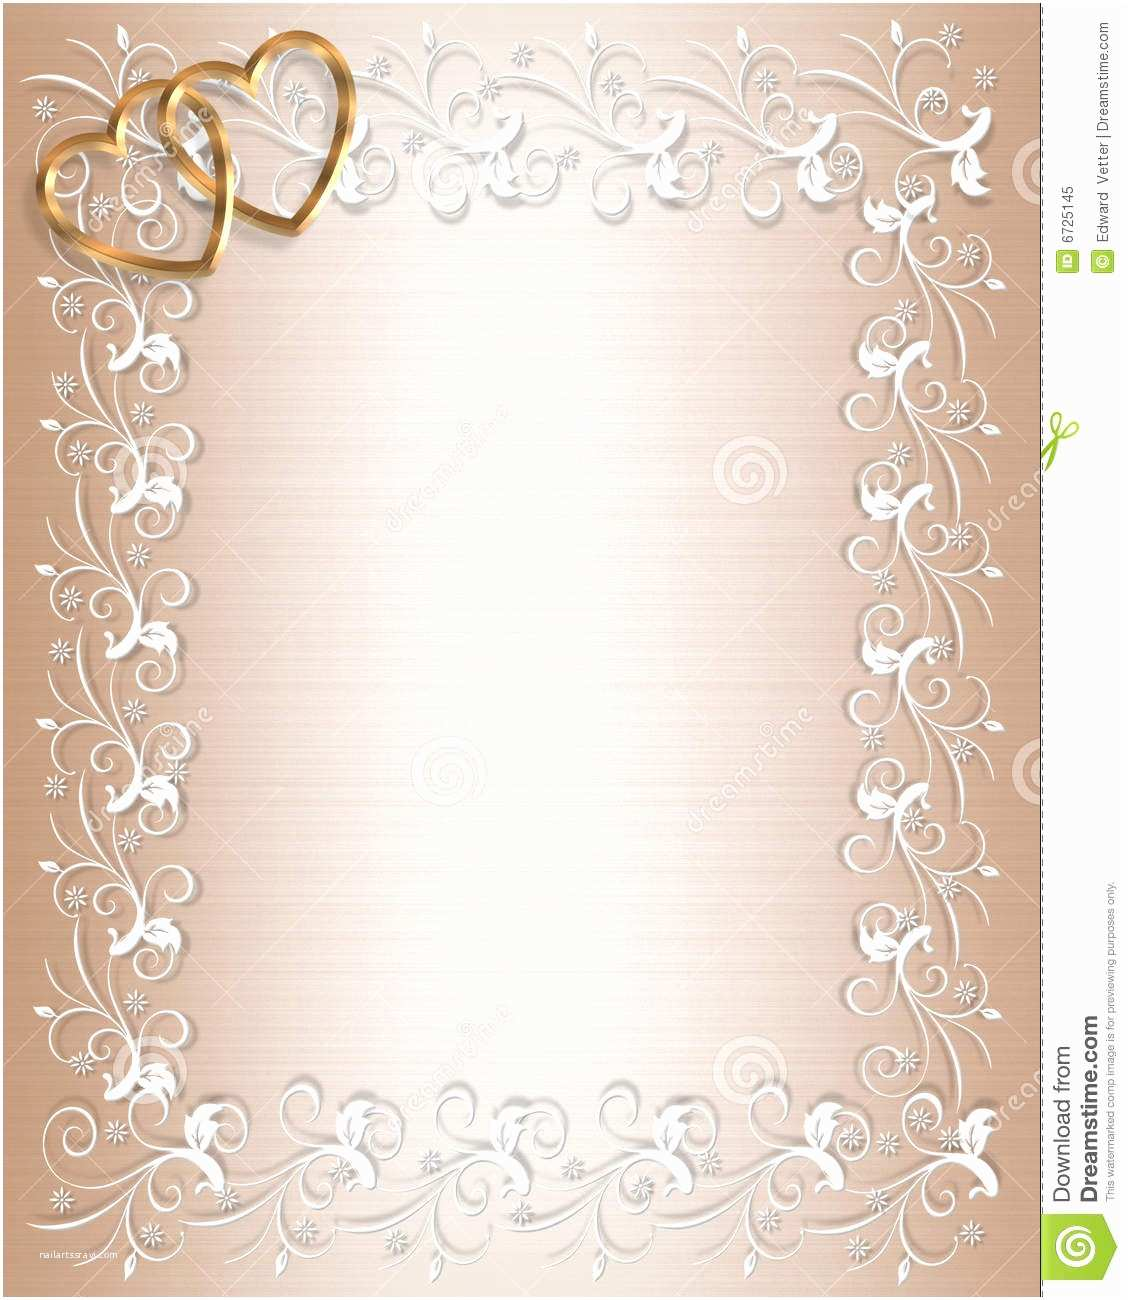 Background Designs For Wedding Invitations Free Wedding Invitation Background Wedding Invitation